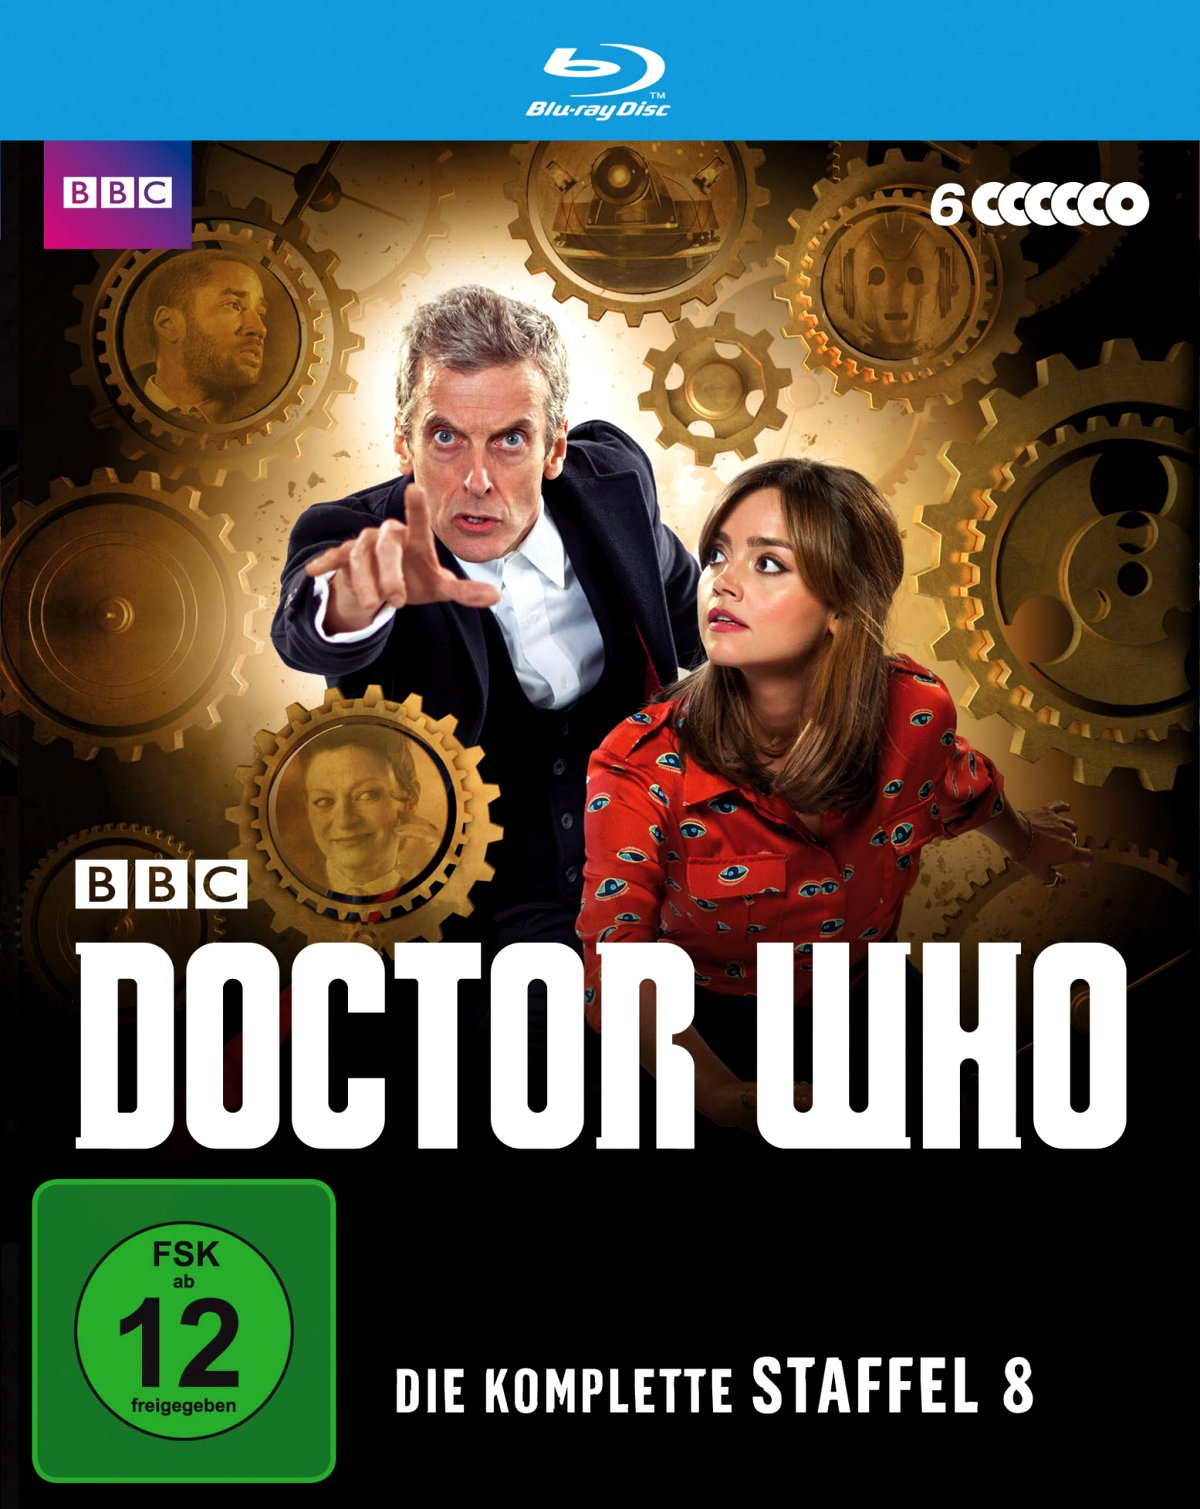 Doctor Who – Die komplette Staffel 8 (TV-Serie, DVD/Blu-Ray)